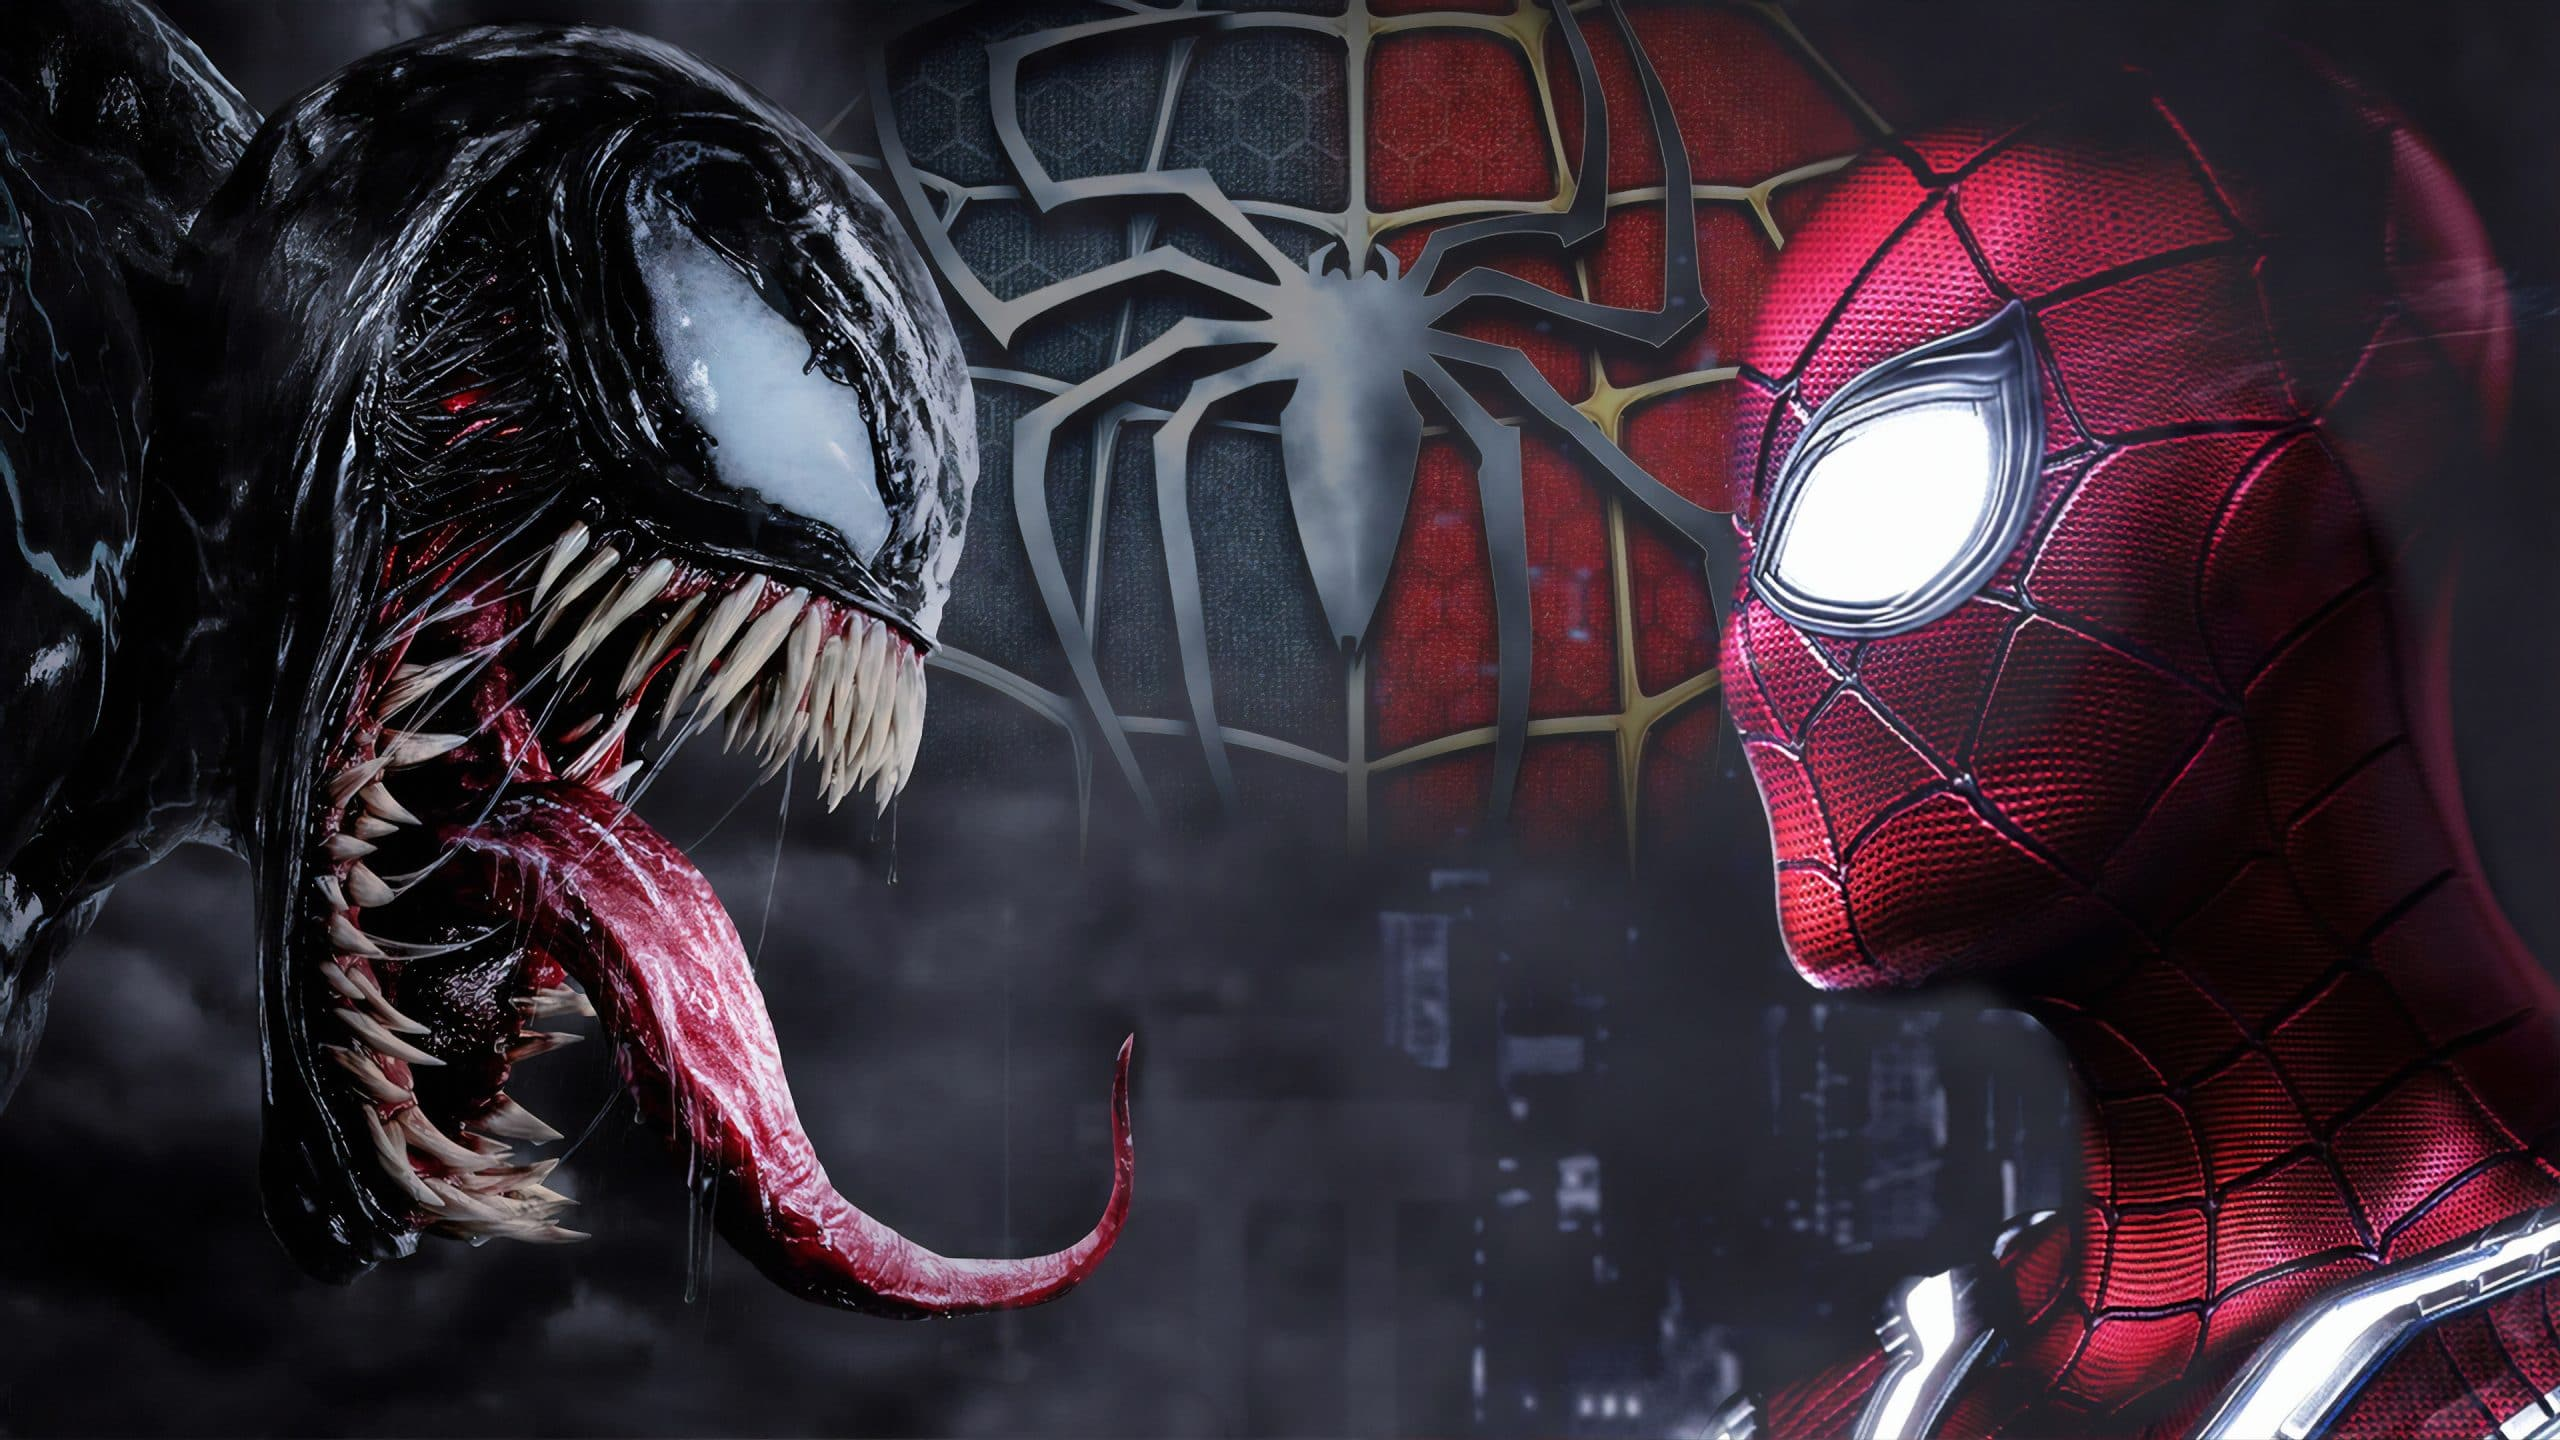 MCU THEORY: Spider-Man Won't battle with Venom - He'll BECOME Venom !!